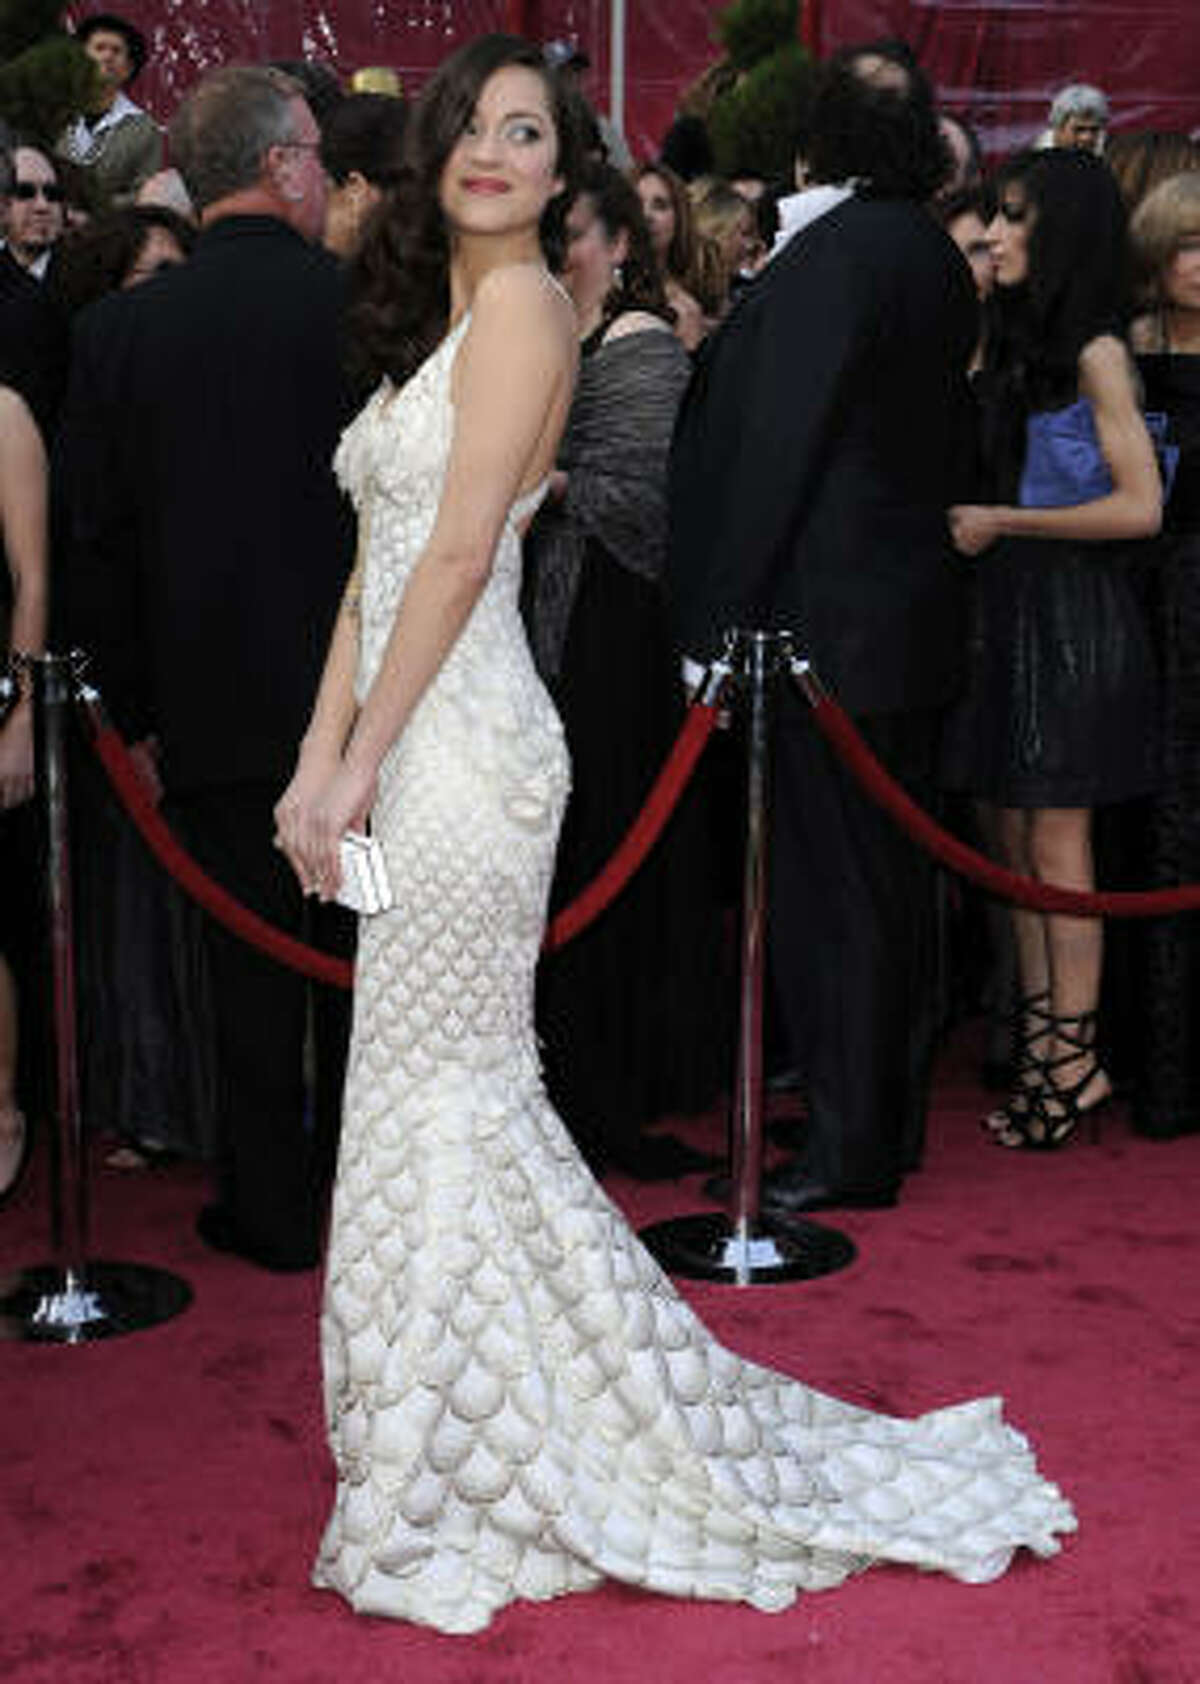 French actress Marion Cotillard wore a fish-scale-inspired gown to last year's Oscars ceremony.